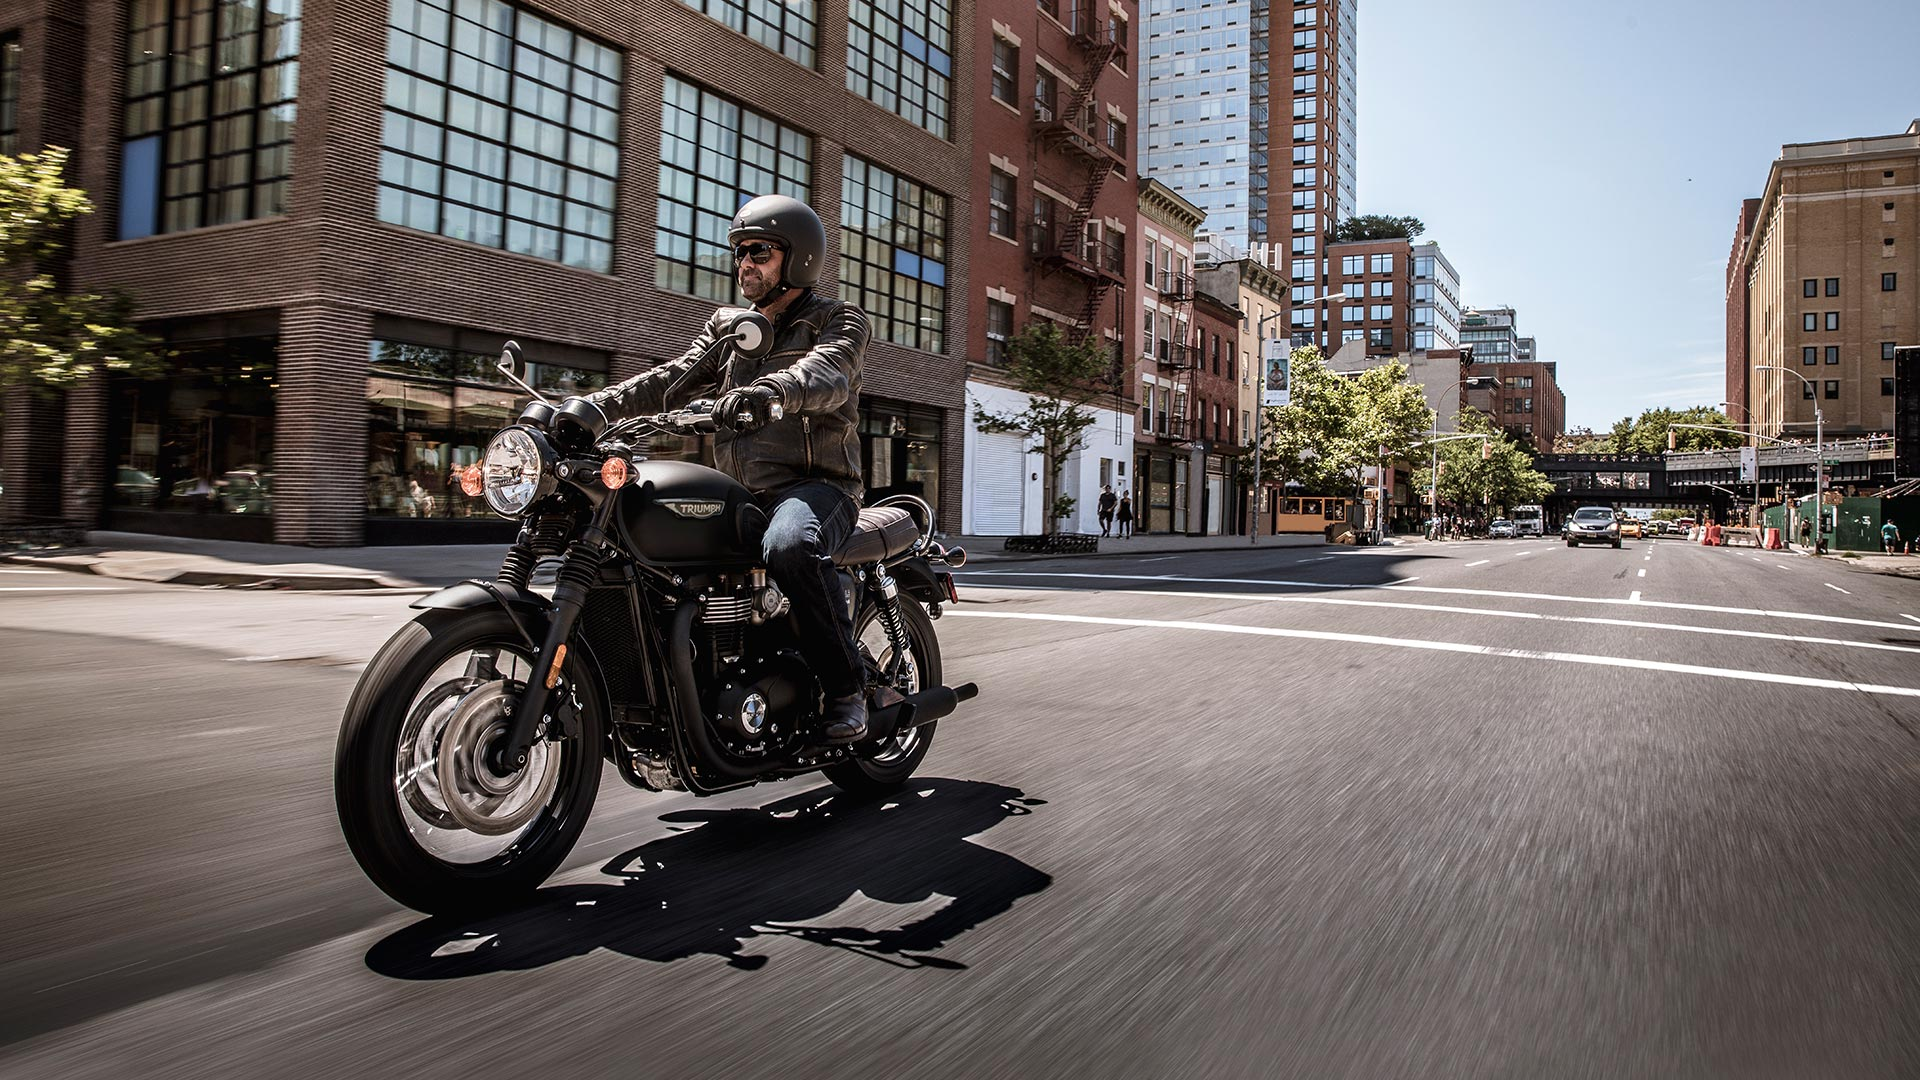 Triumph bonneville T120 black riding through city